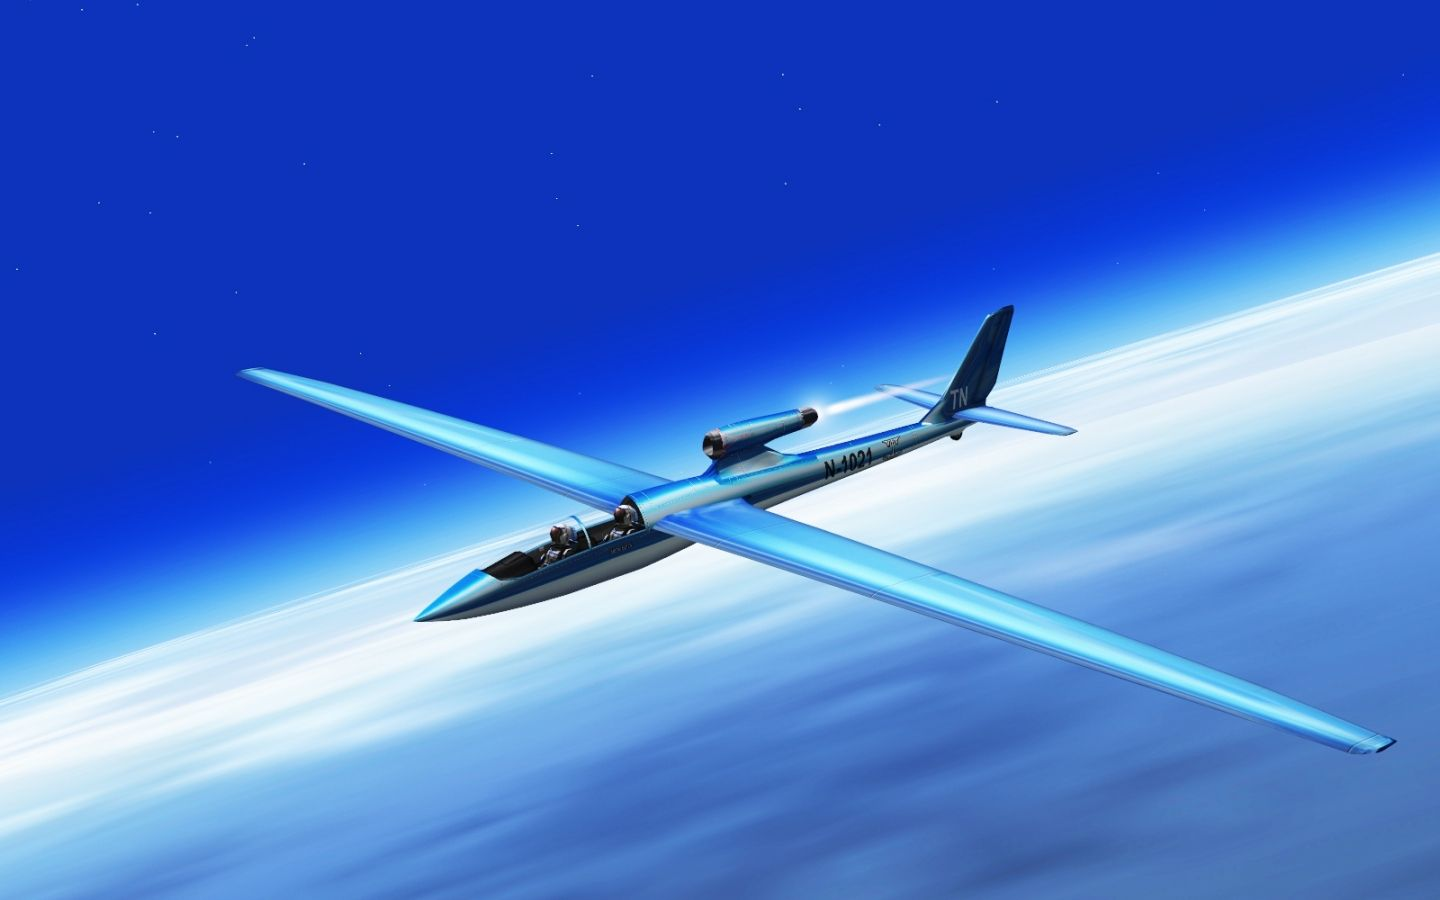 1440x900 Free download Image Gallery sailplane wallpaper [1600x1200] for ...